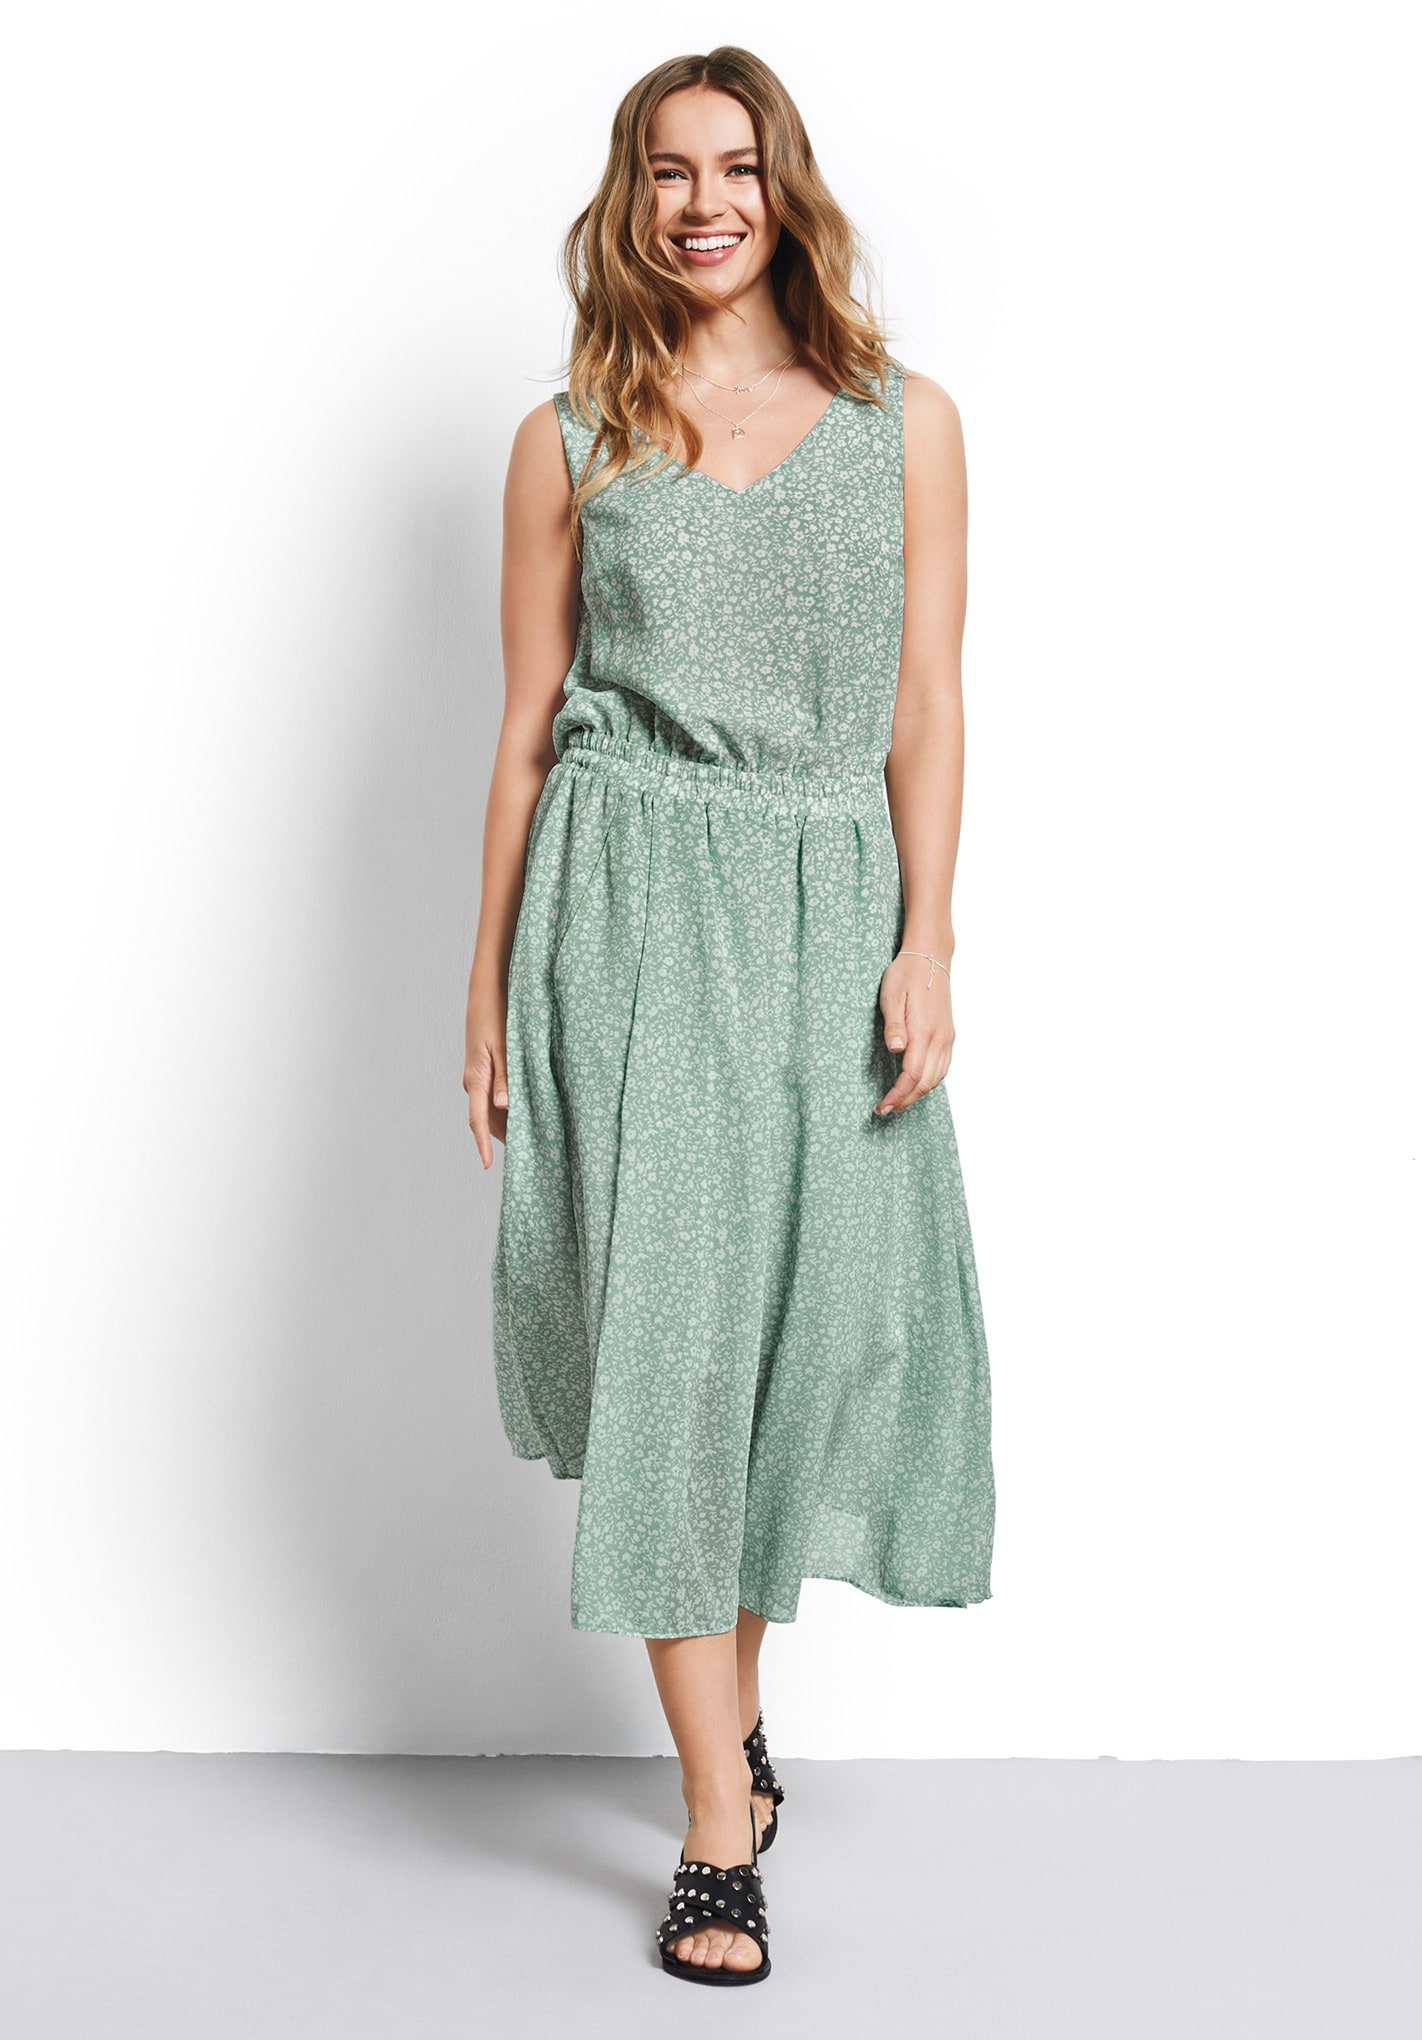 Dresses - Casual, Chic Daywear